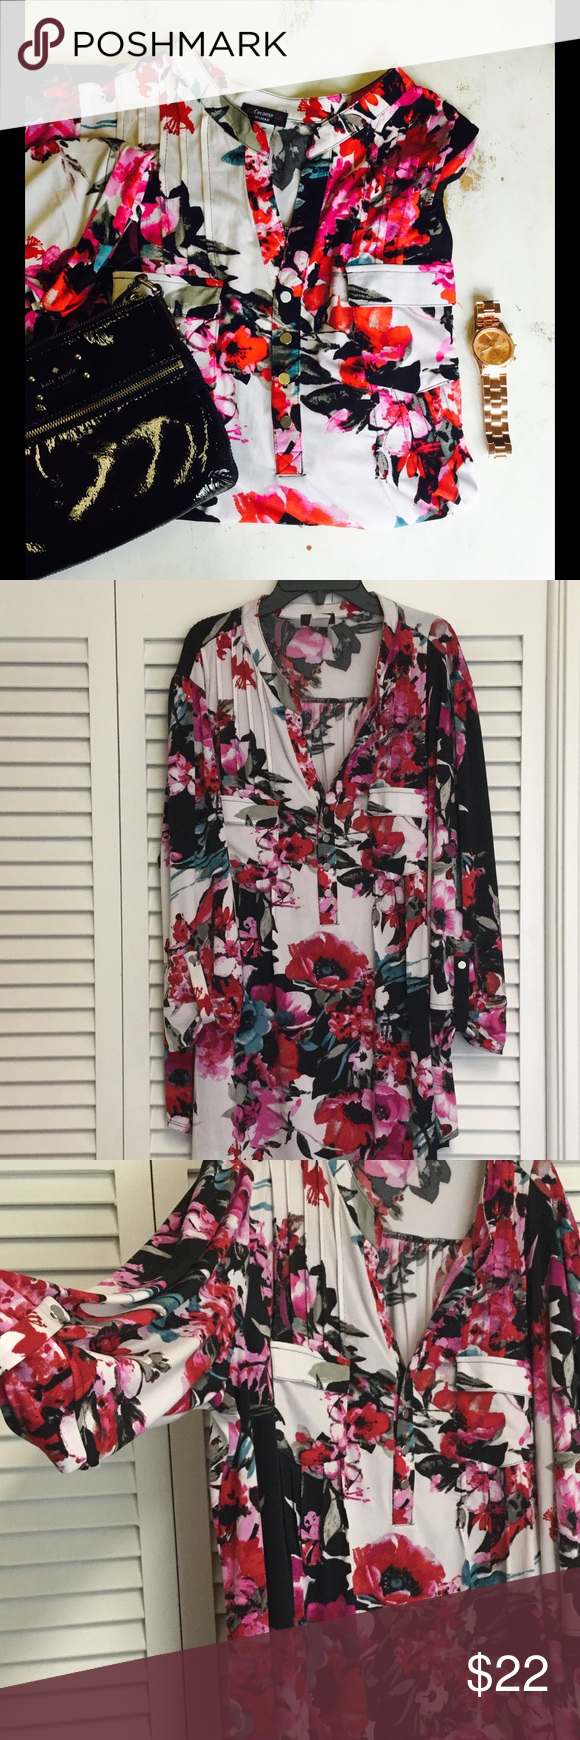 3x floral top Runs very roomy! Super flattering. Worn once to church, to big for me now. Tons of compliments guaranteed! I hate to part with it. Tops